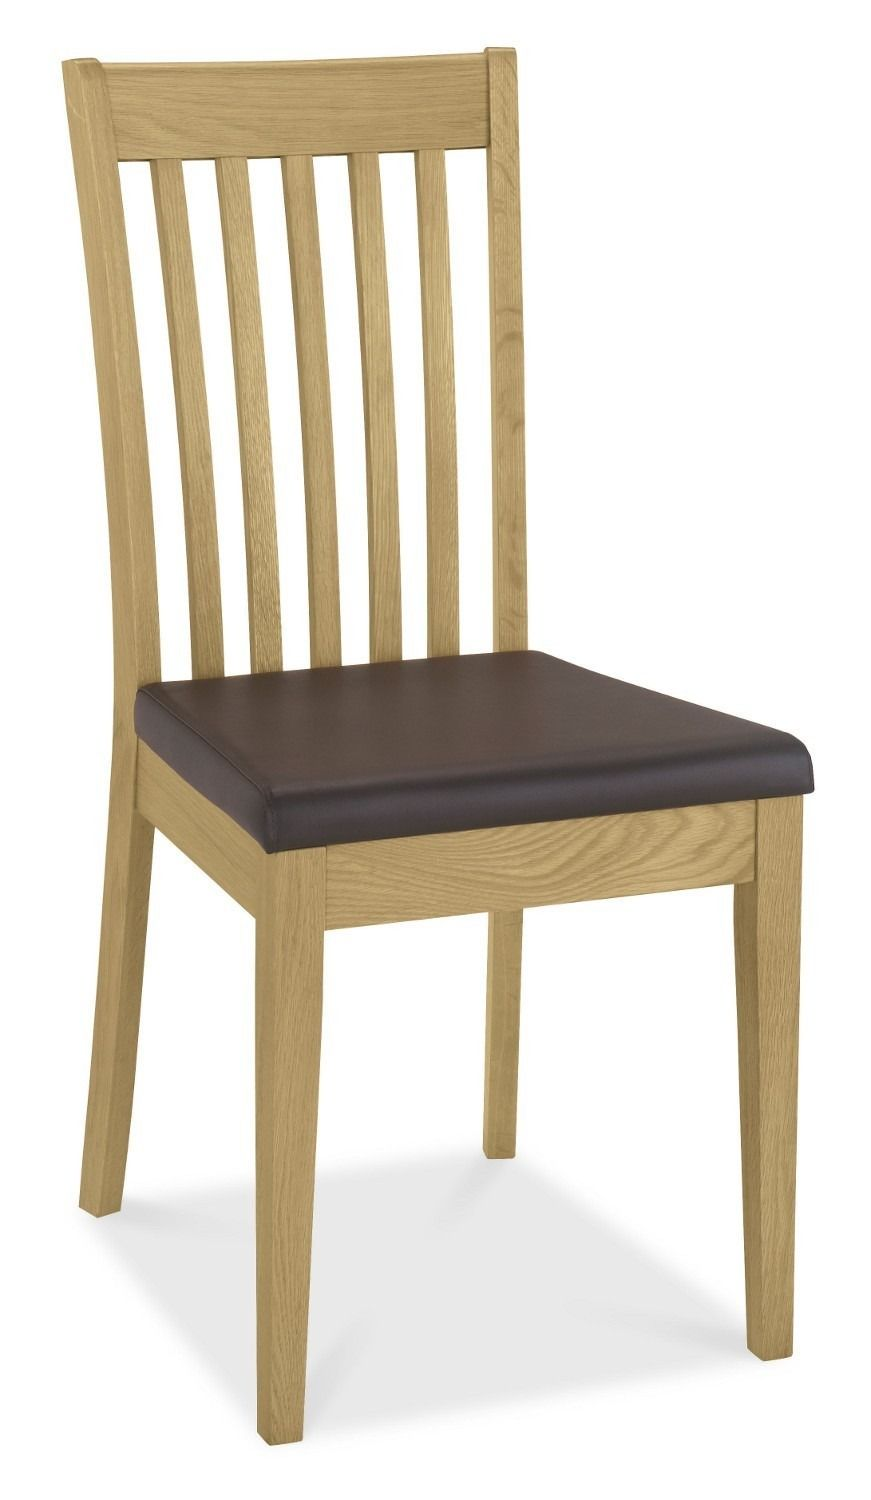 Shaker Oak Slatted Dining Chair - Brown Faux Leather Seat Pad (Pair ...